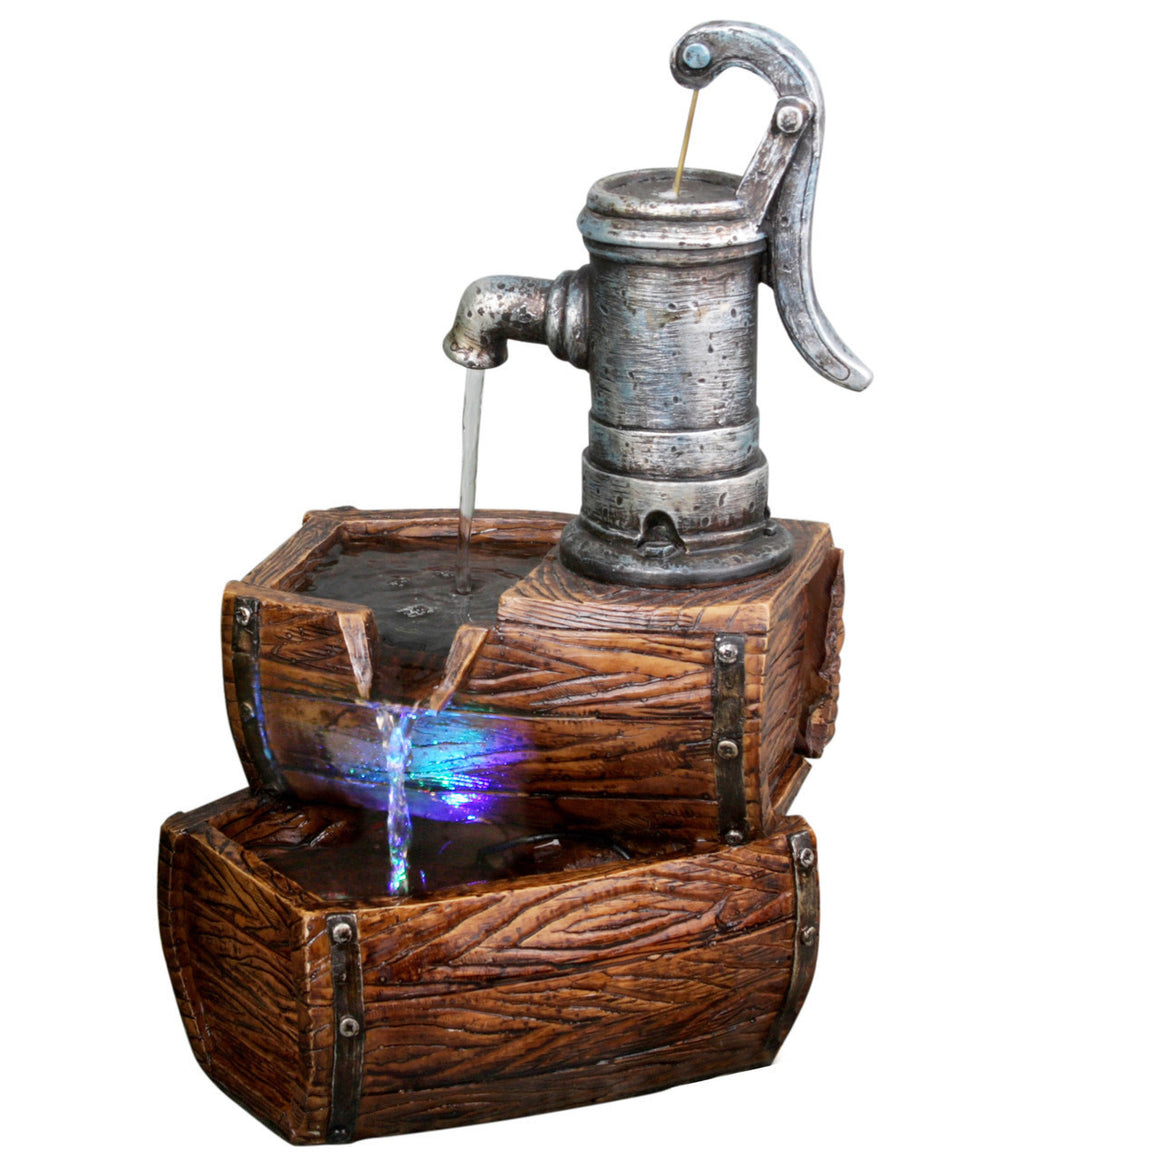 Two Tier Barrel Tabletop Fountain - Soothing Walls